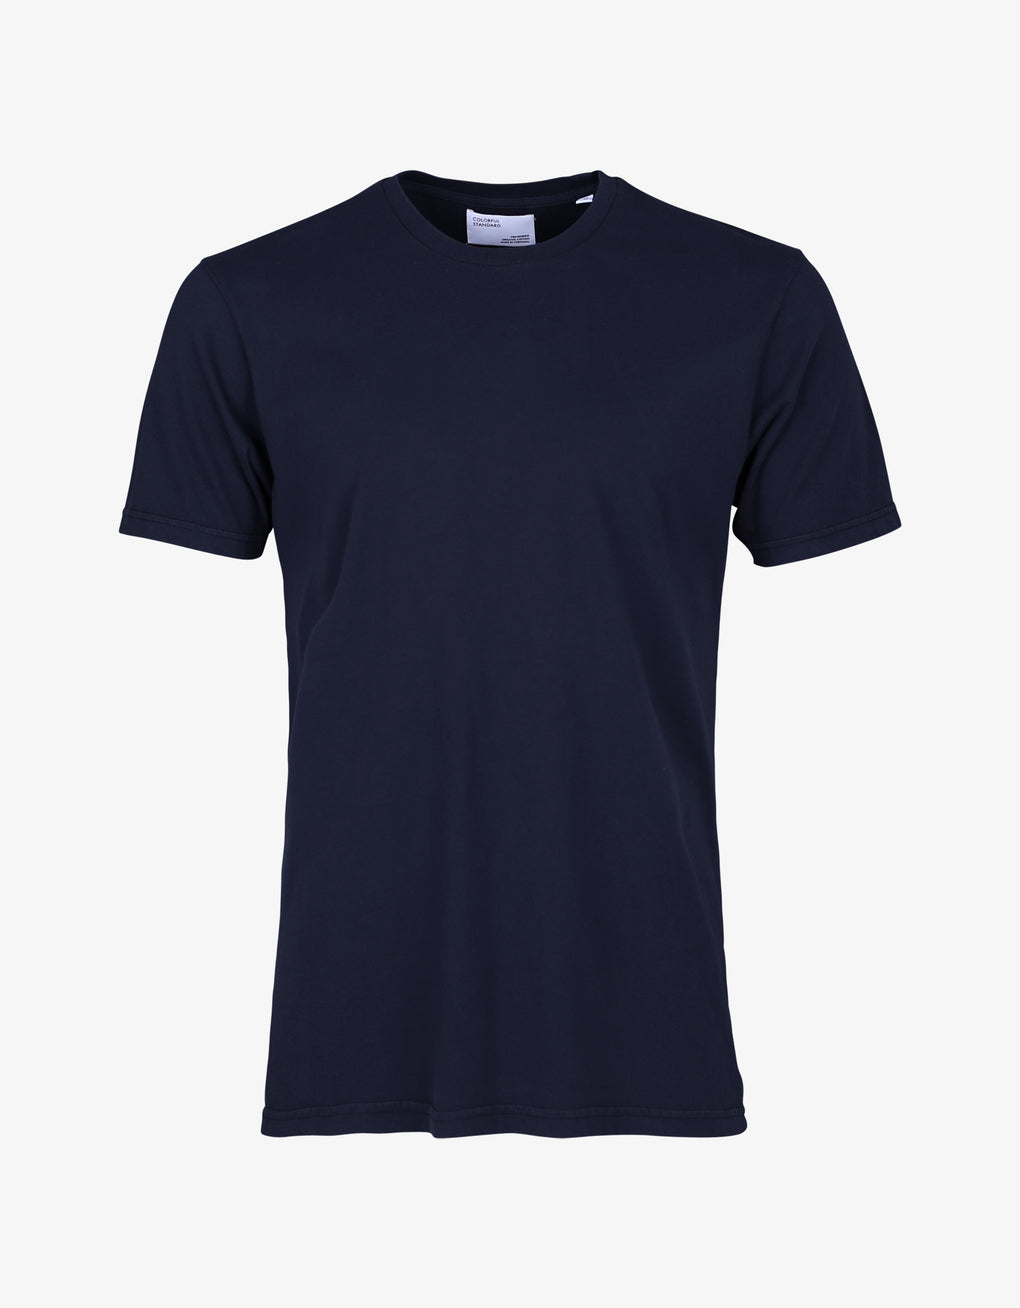 Colorful Standard Classic Organic Tee T-shirt Navy Blue